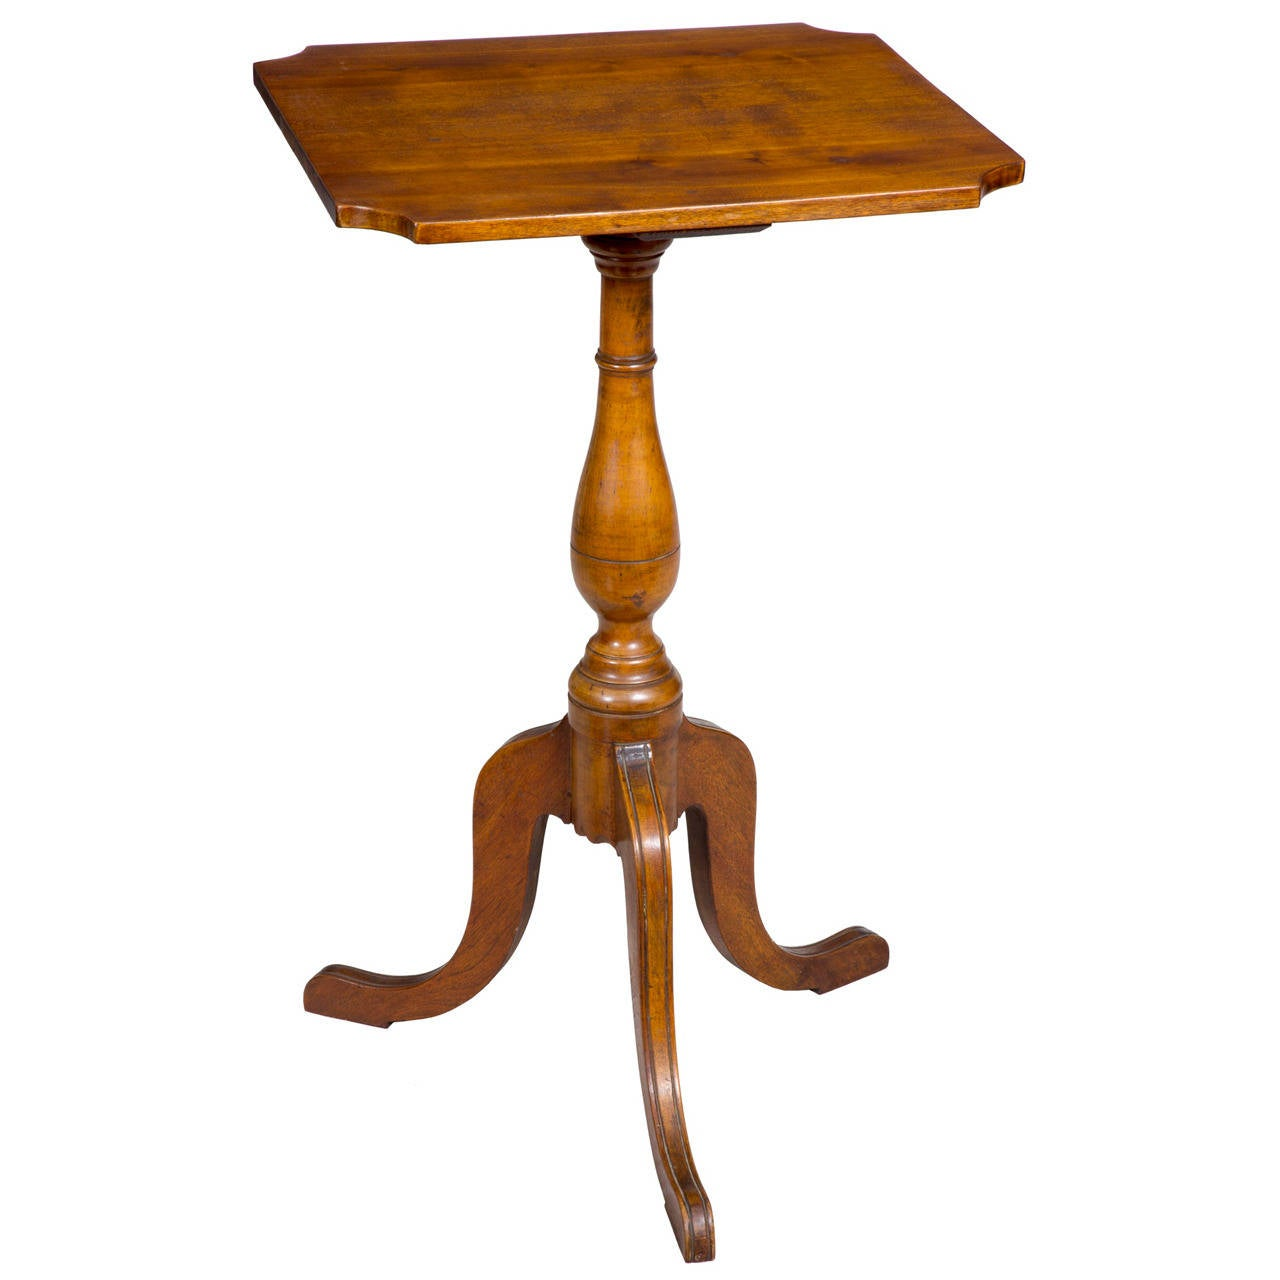 Birch Federal Candle Stand with Notched Corners, circa 1820